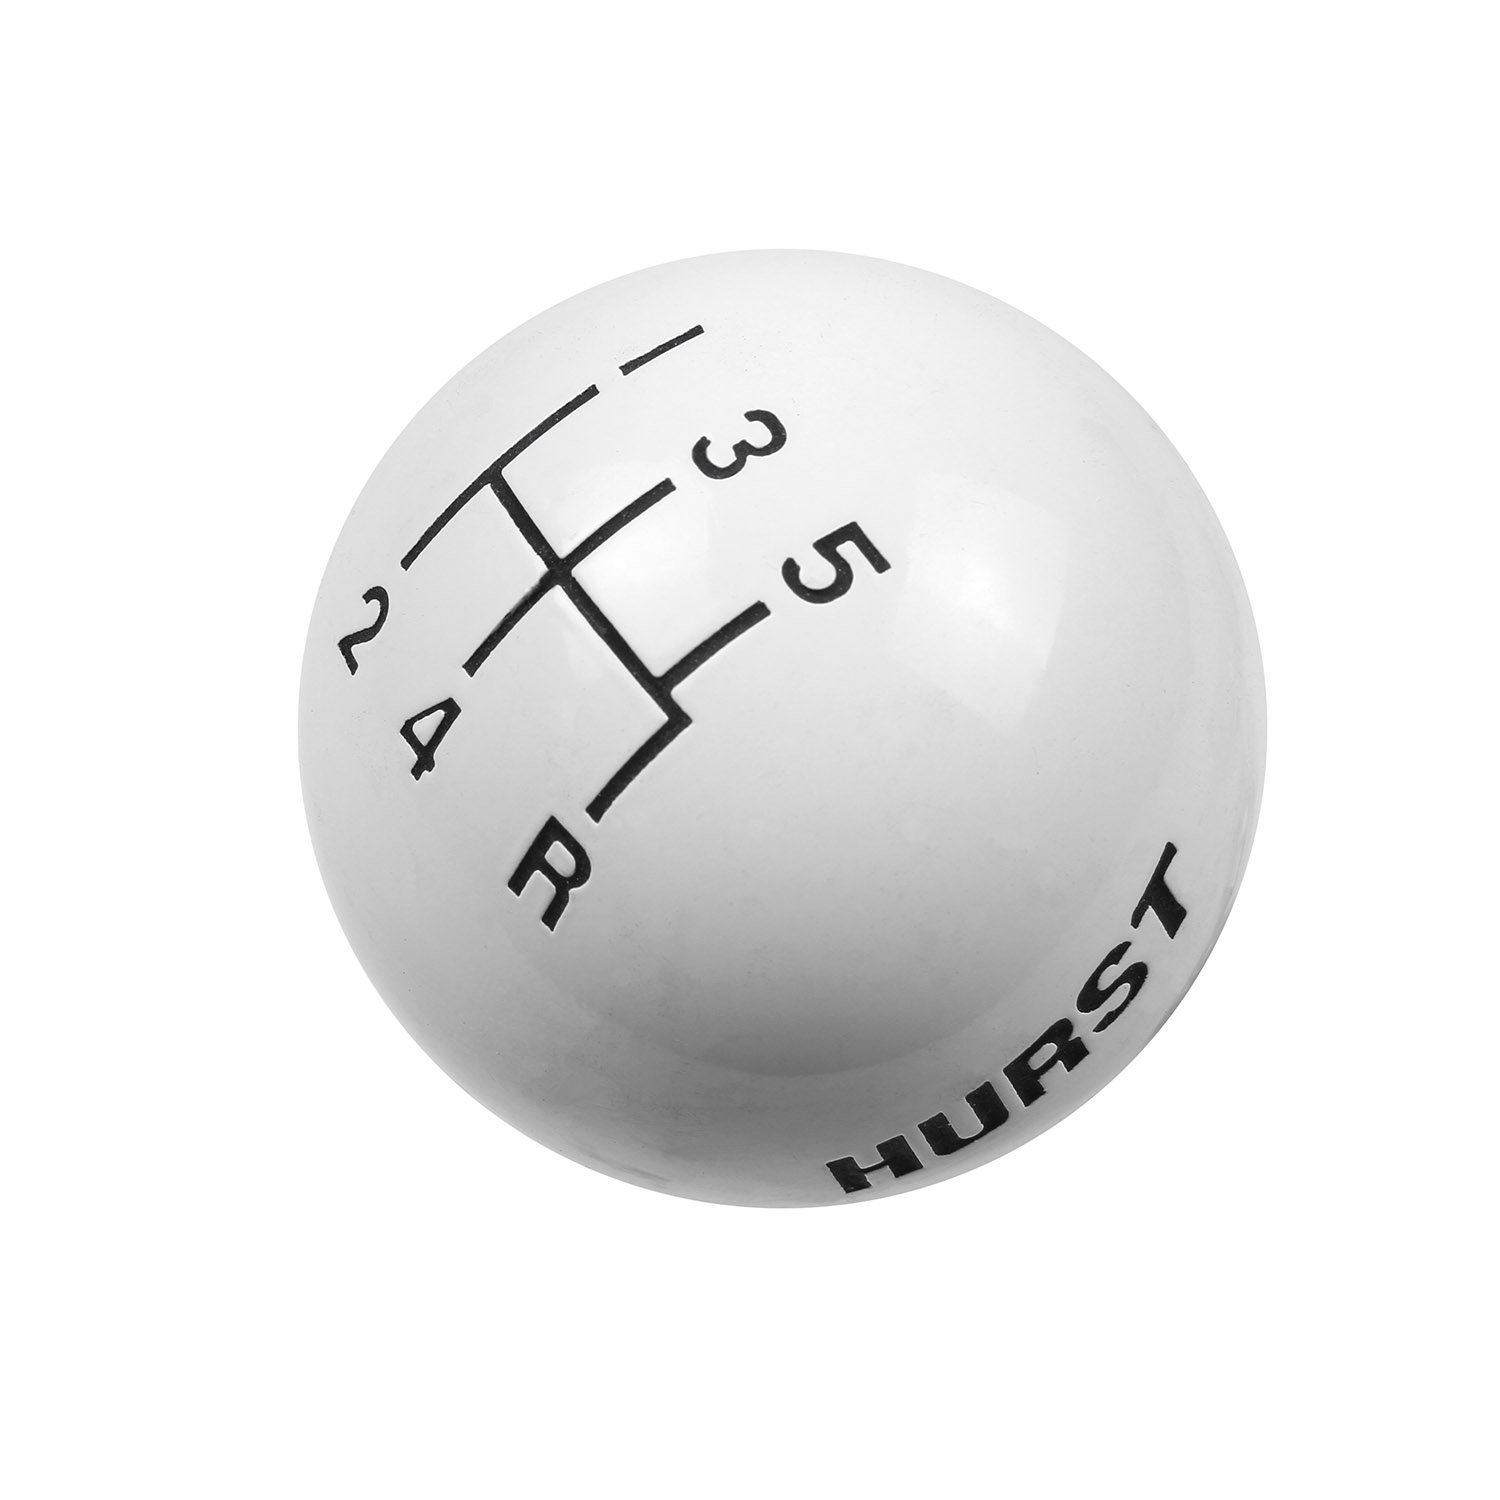 Hurst 1630025 White 5-Speed Replacement Shifter Knob